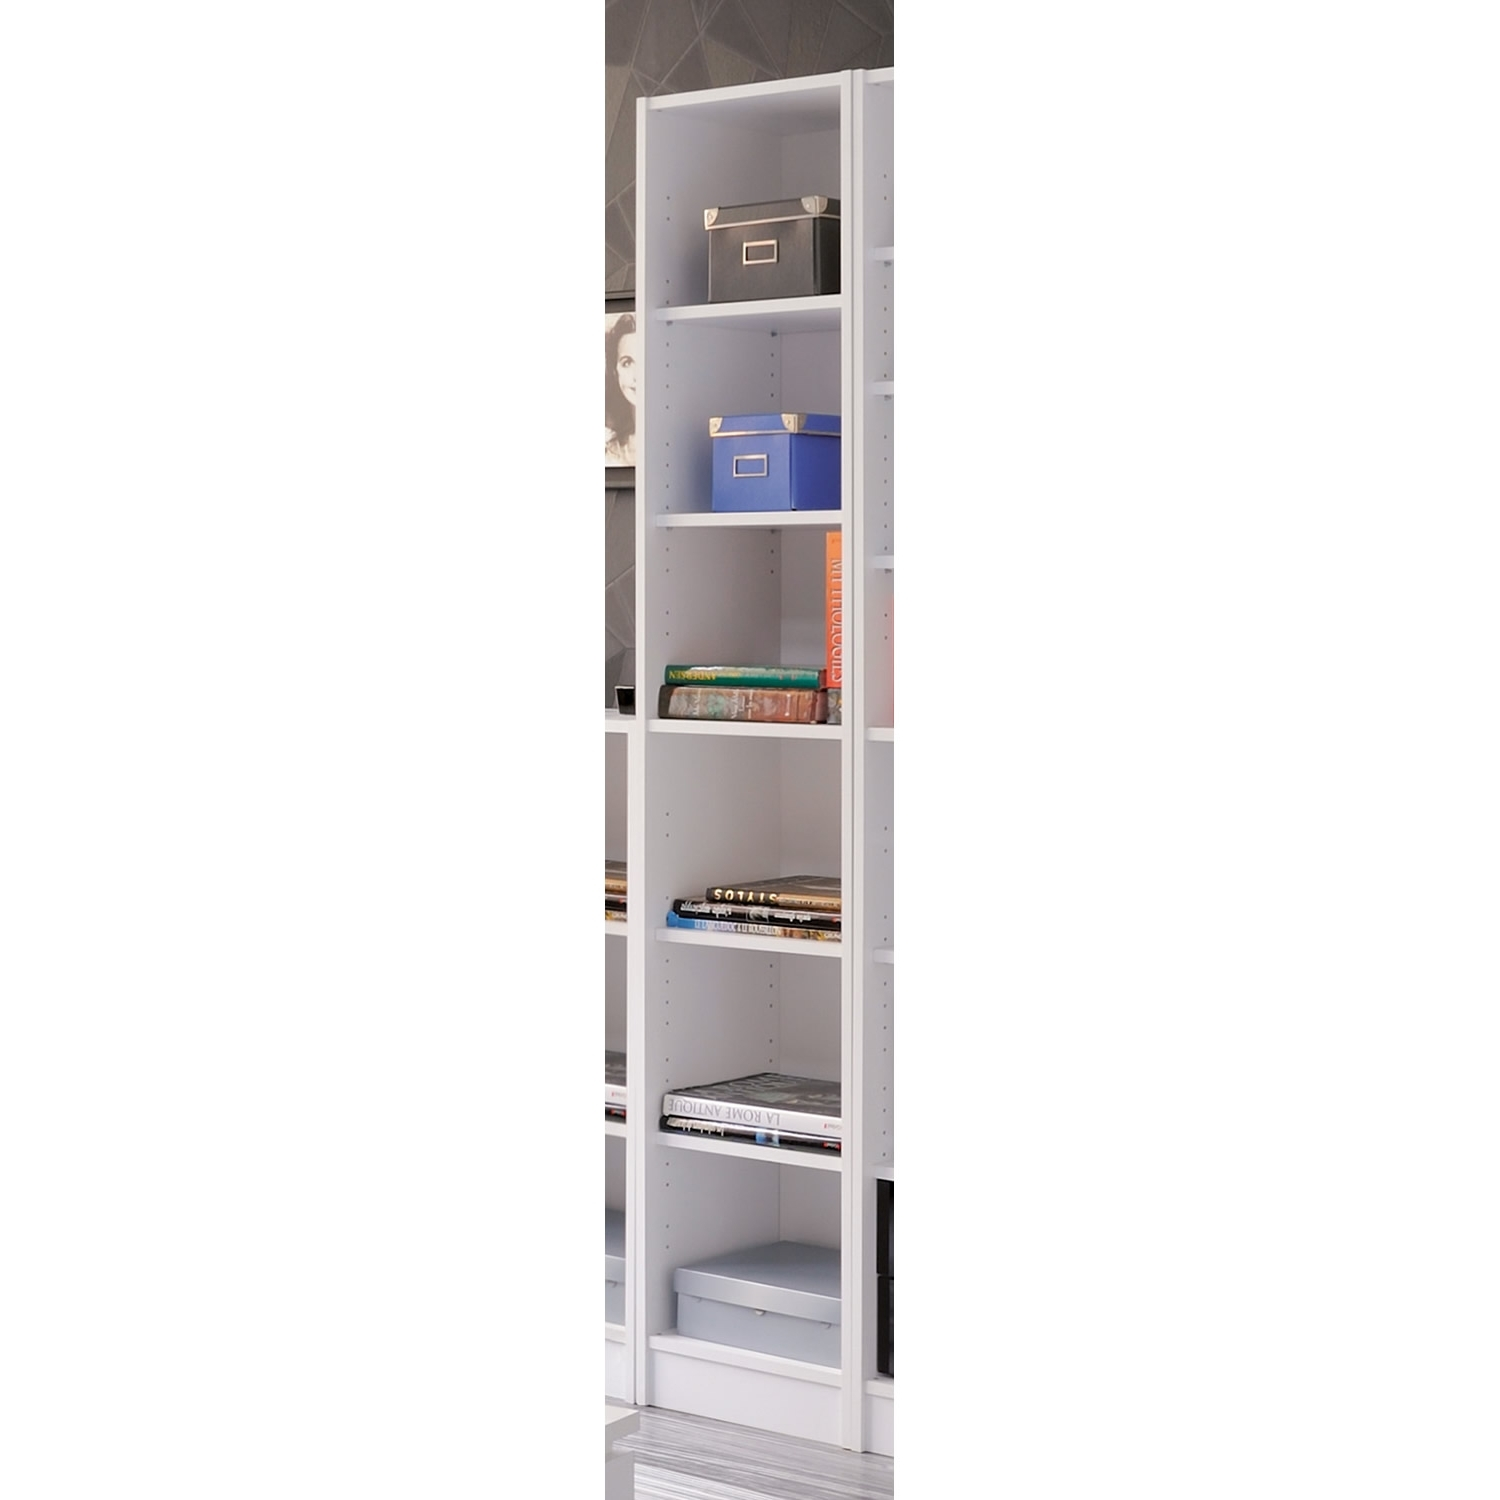 Slim Bookcases With Recent 29 Slim Bookcase White, Antique White Bookcases, Antique White (View 11 of 15)